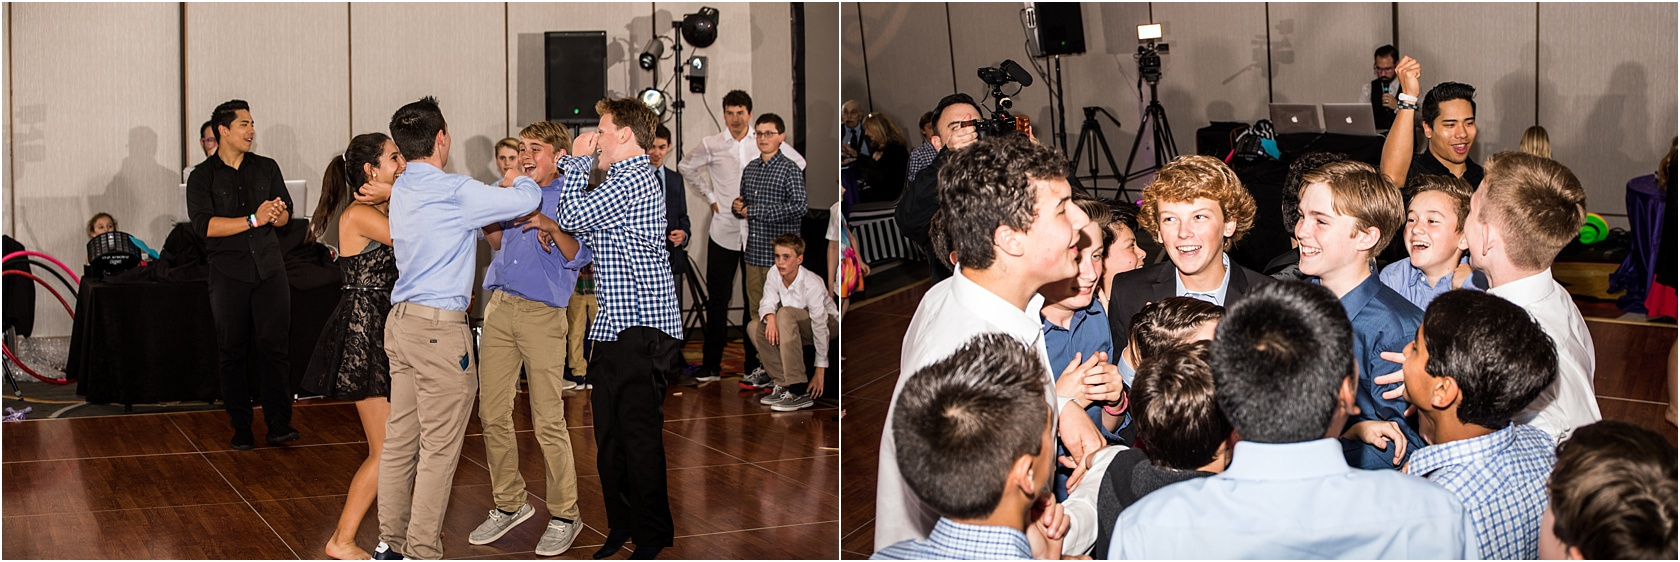 Matts San Diego Bar Mitzvah Living Radiant Photography_0159.jpg